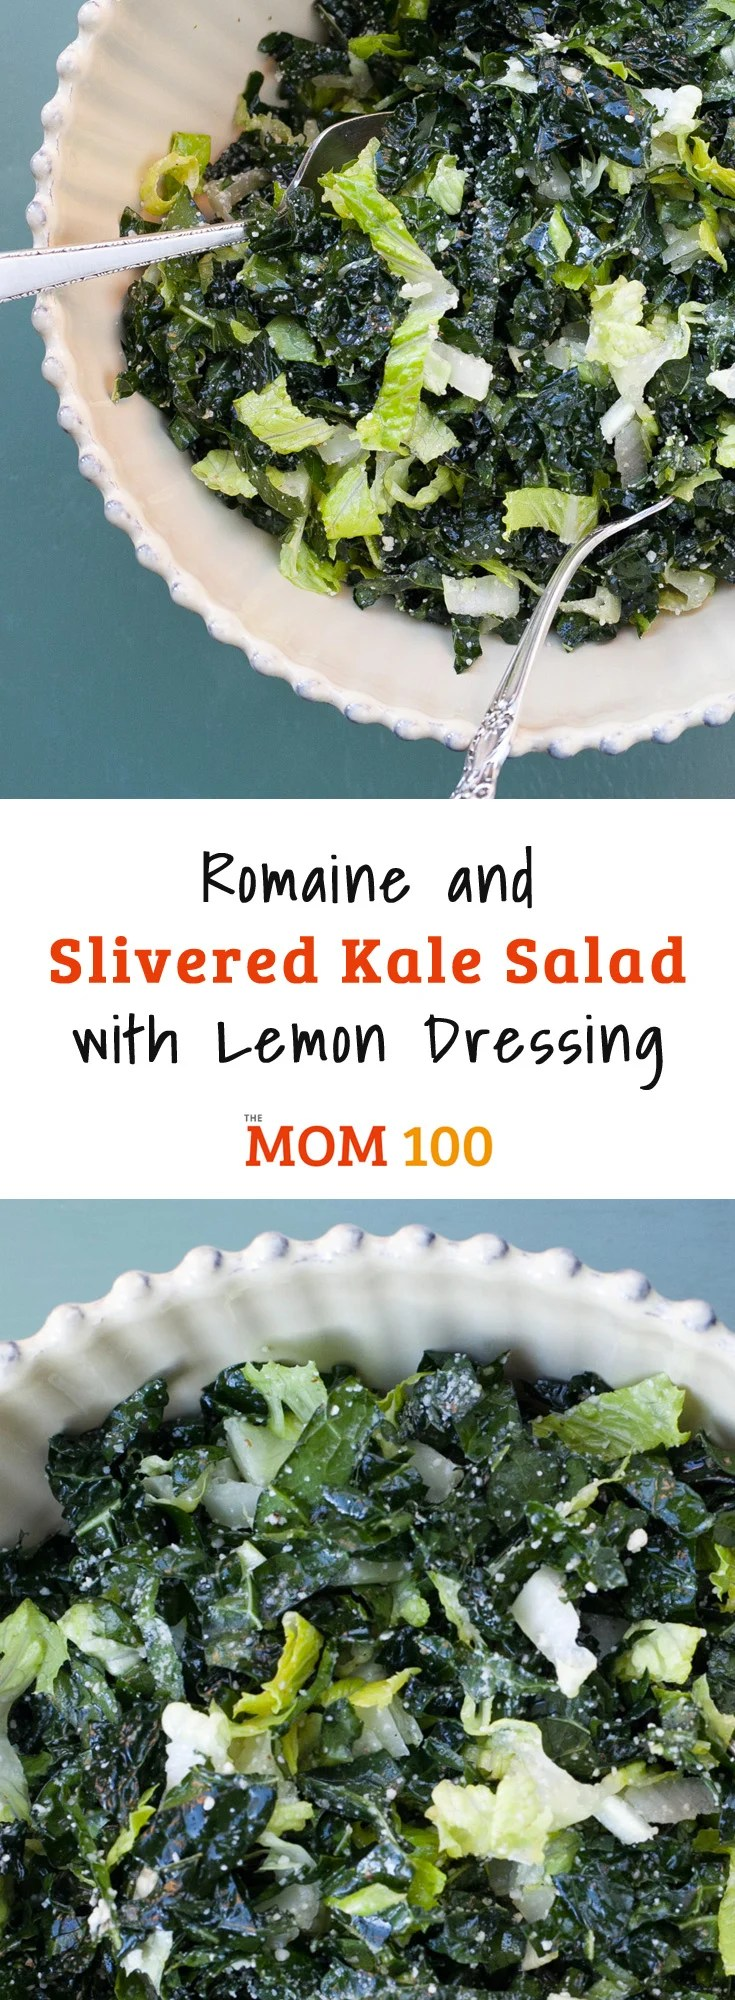 """When I first made this Romaine and Slivered Kale Salad with Lemon Dressing, I kind of held my breath while serving it up - my kids, along with most of the kids in the free world – have been conditioned to hear the word """"kale"""" and blanch."""